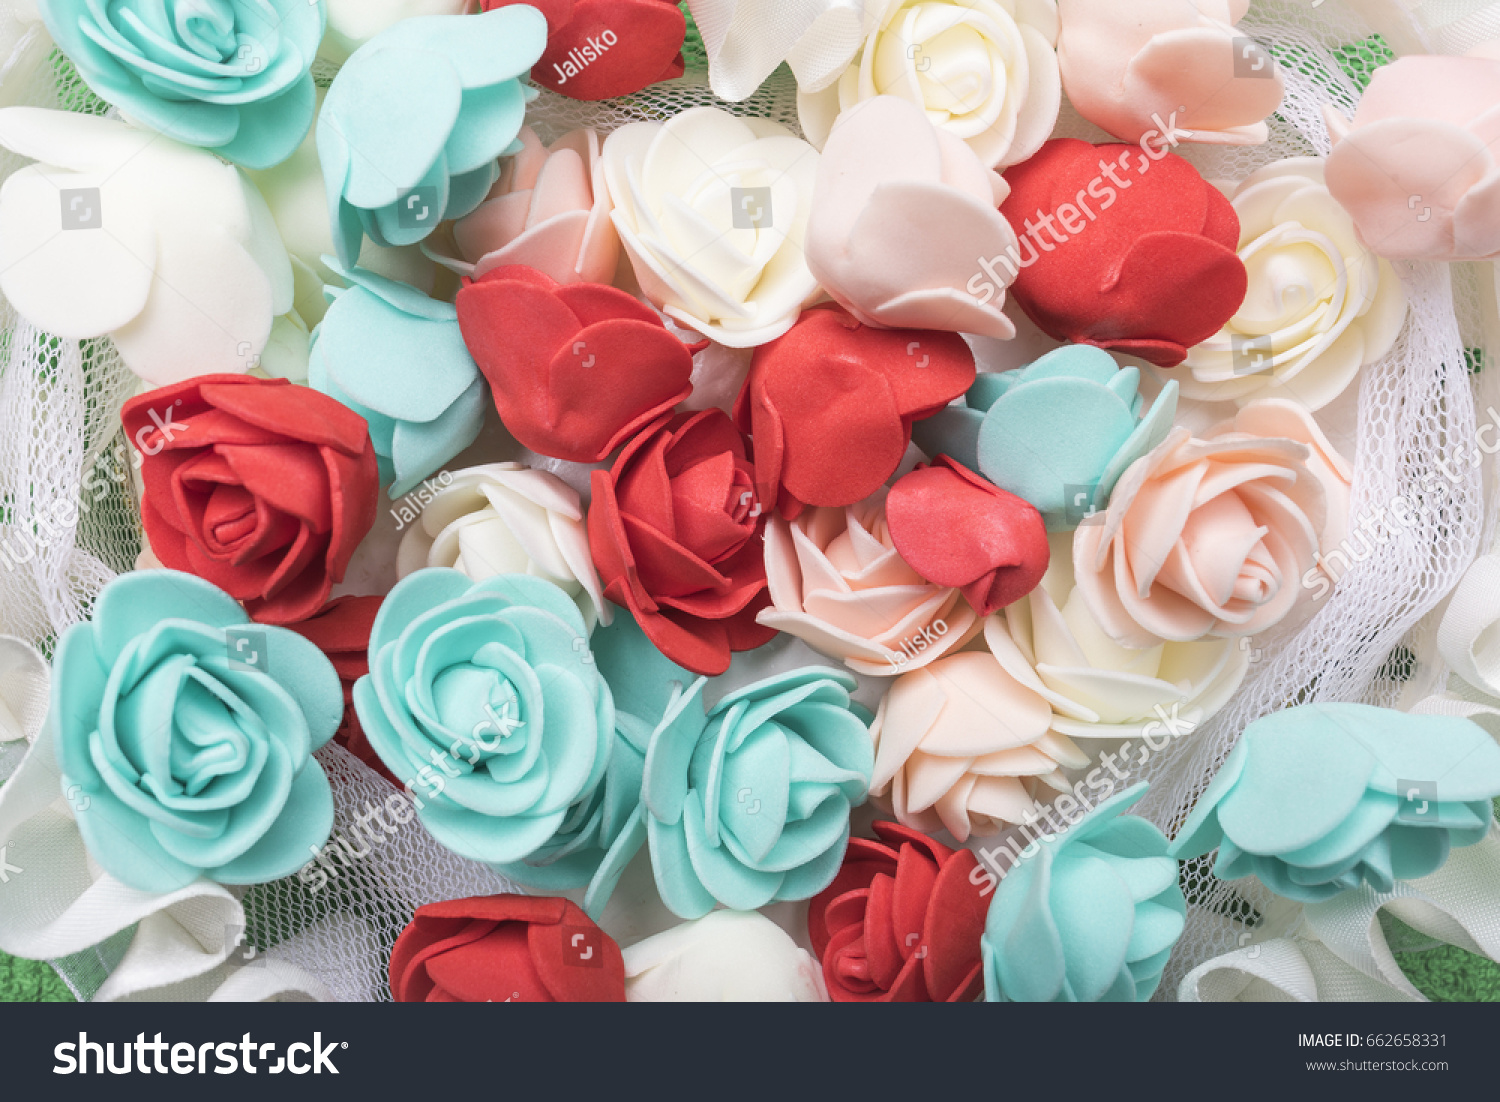 Small Artificial Rose White Red Turquoise Stock Photo (Royalty Free ...